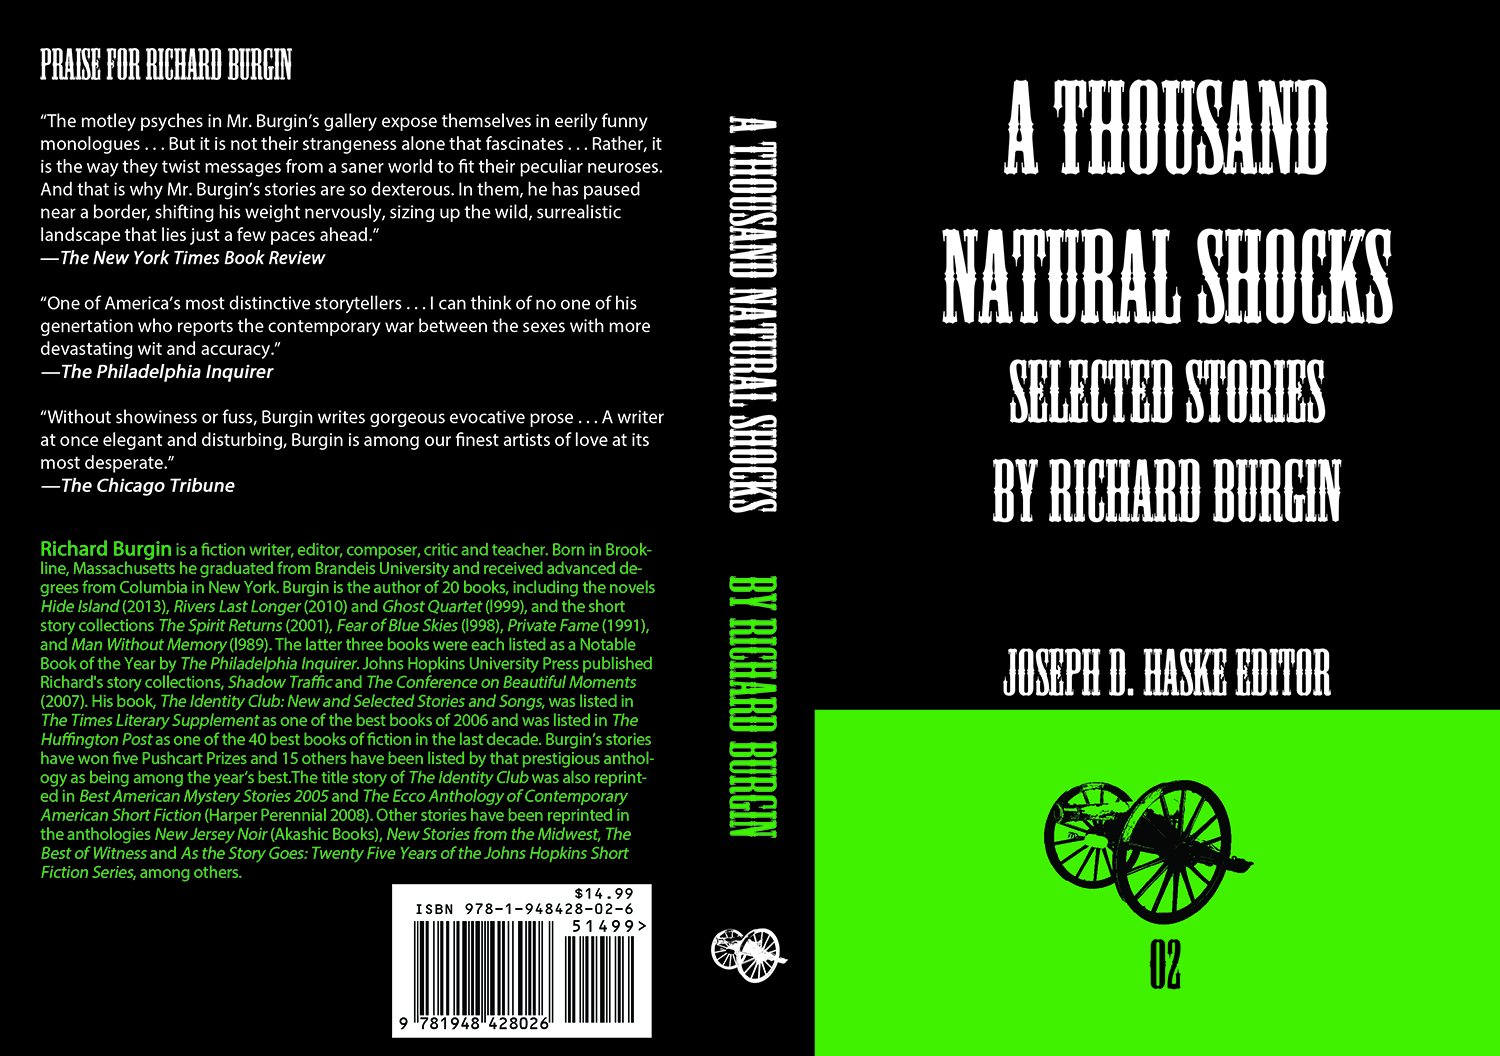 A Thousand Natural Shocks: A Collection of Stories  by Richard Burgin (Goliad Press: May 2018)